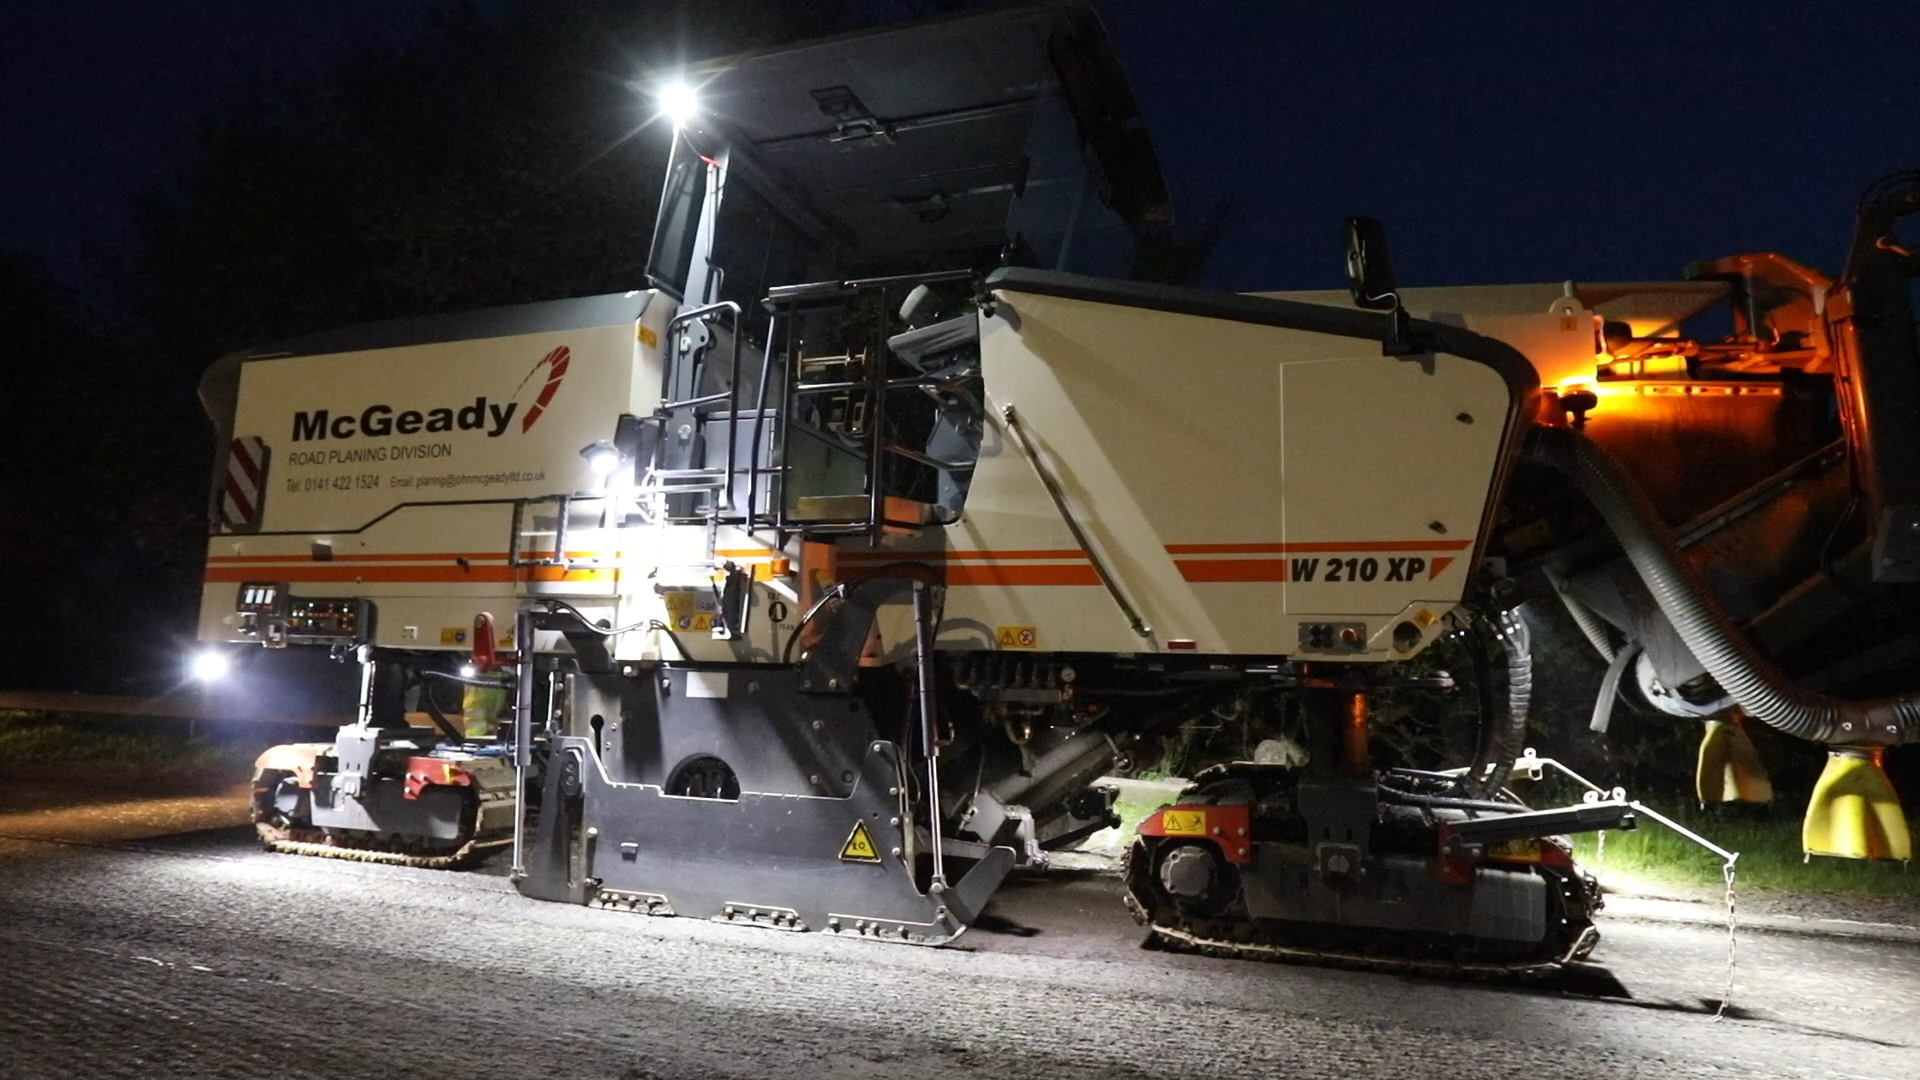 McGeady's fleet of Machinery including the latest planers and pavers